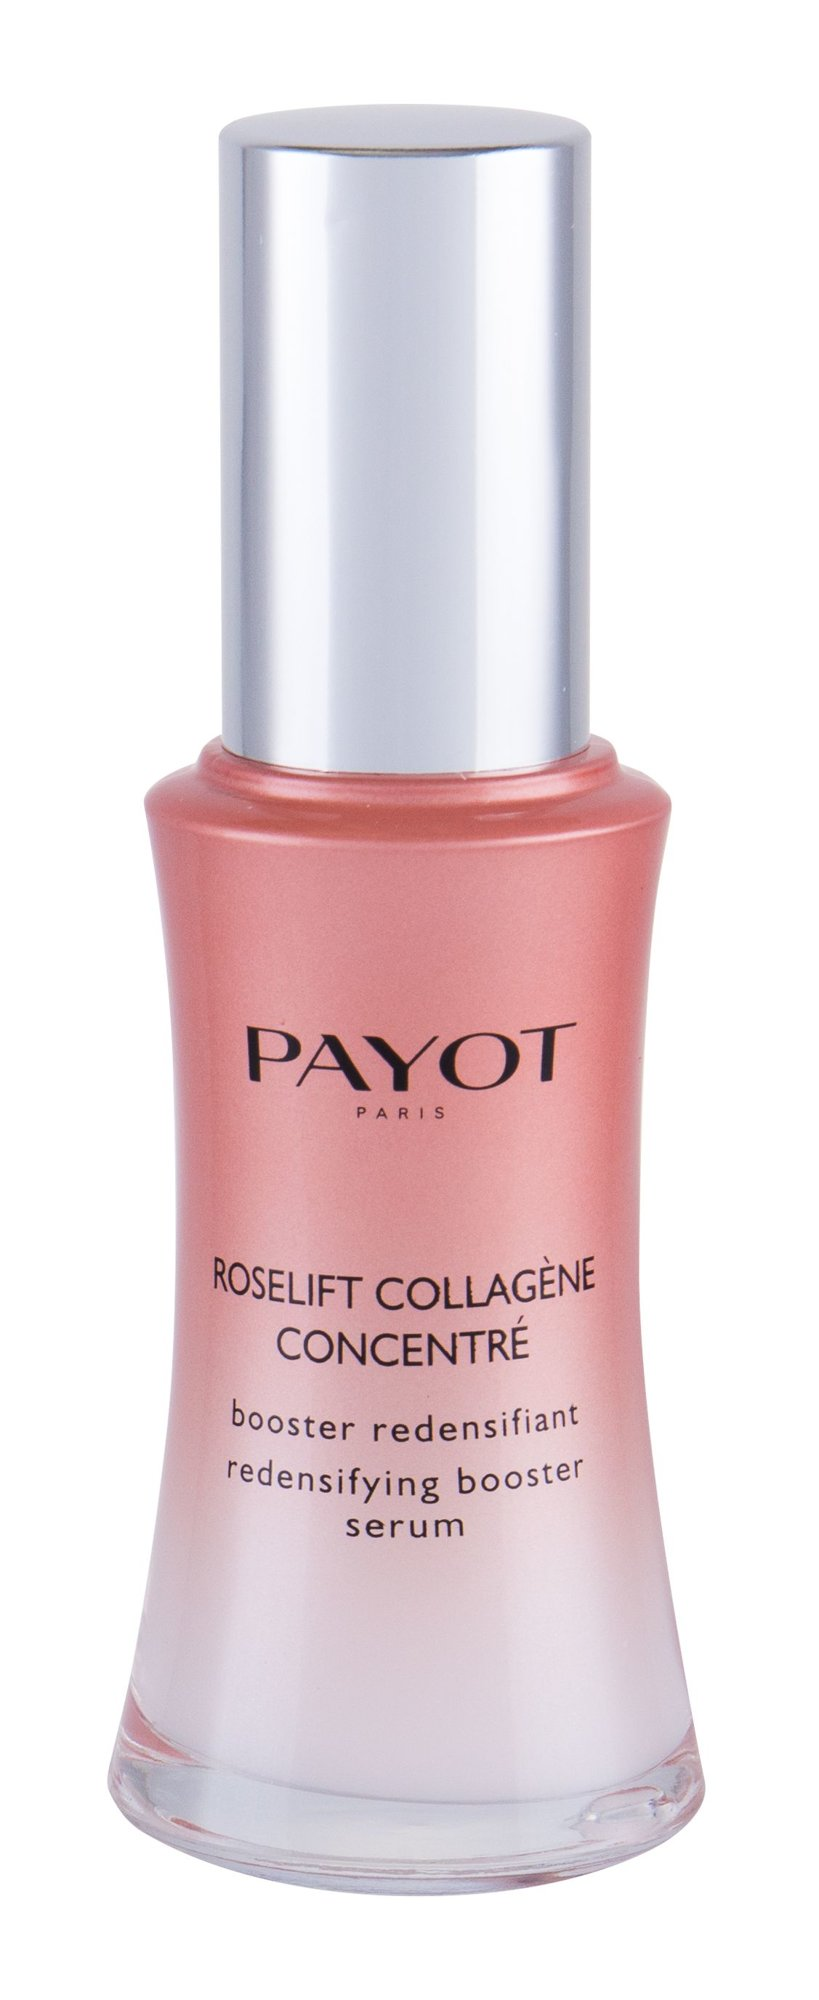 PAYOT Roselift Collagéne  Pleťové sérum, W, 30 ml